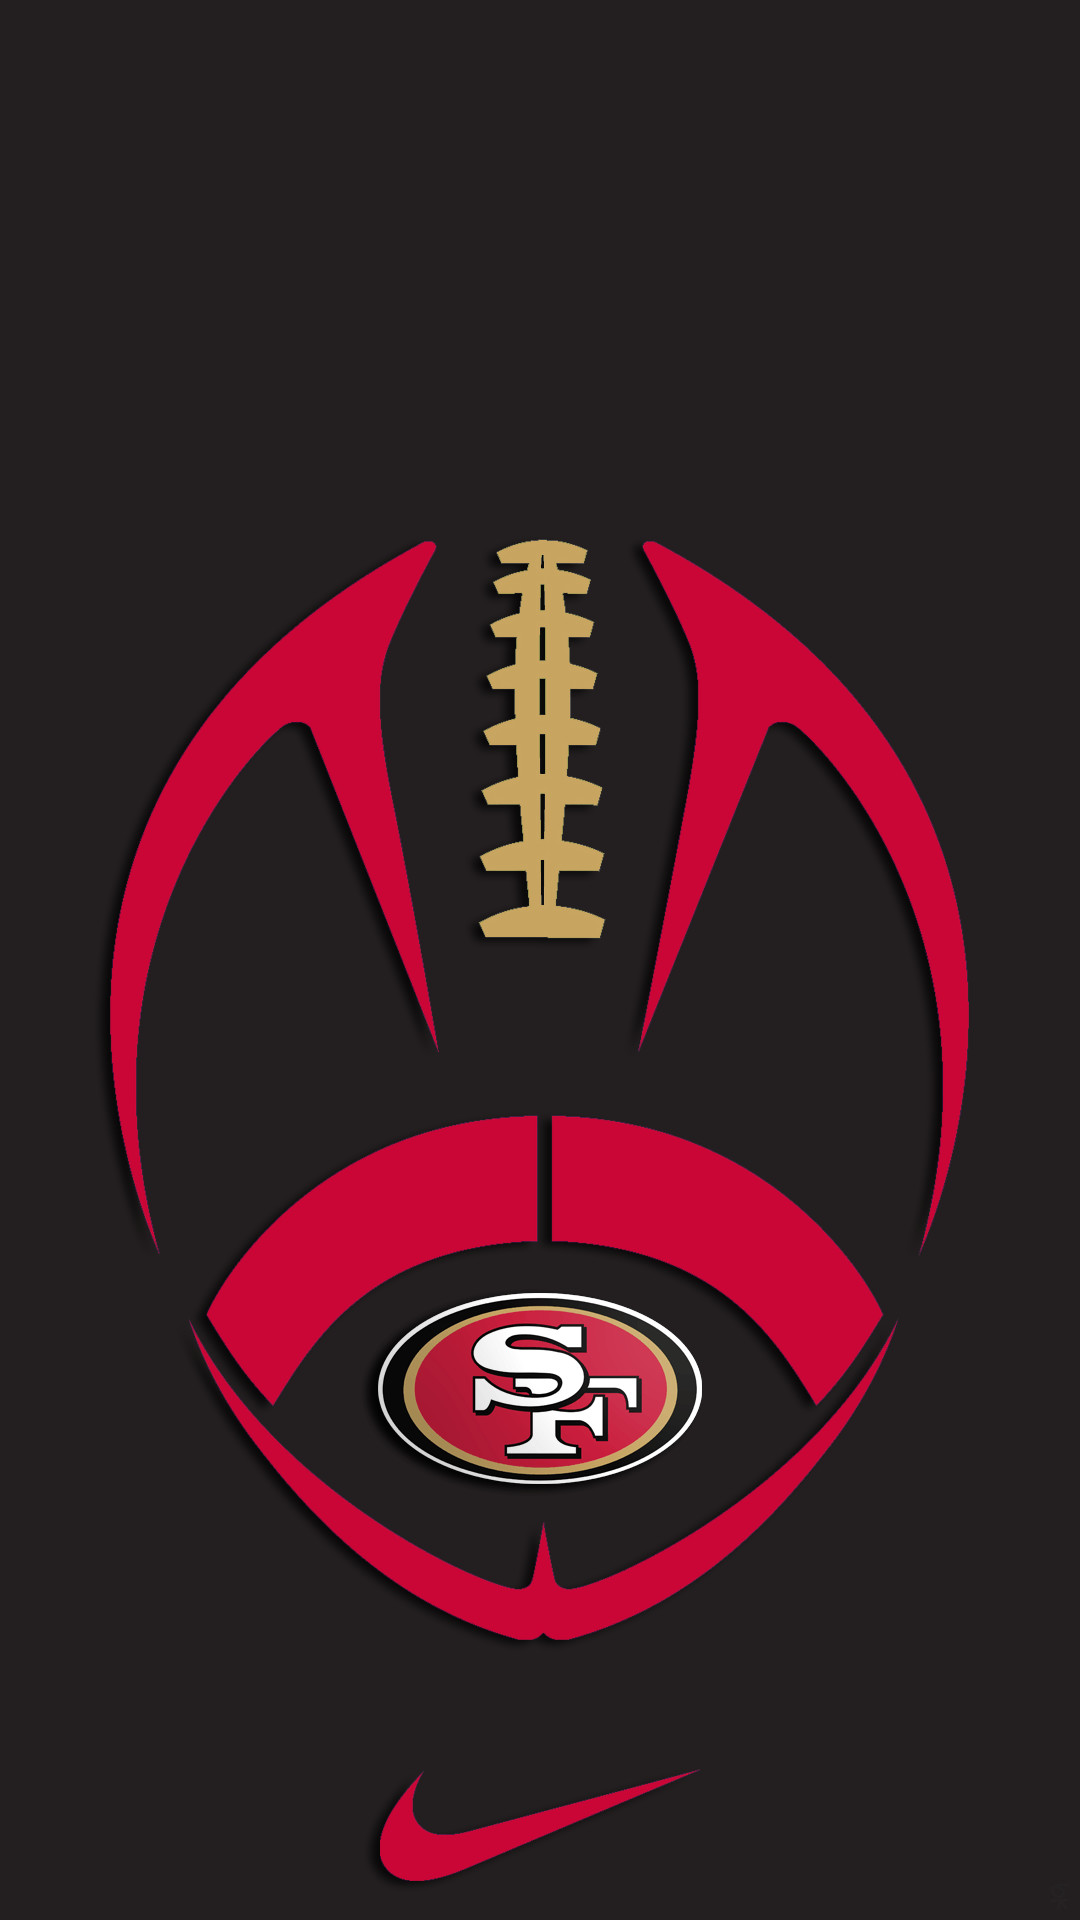 San francisco 49ers wallpaper 2018 download voltagebd Choice Image